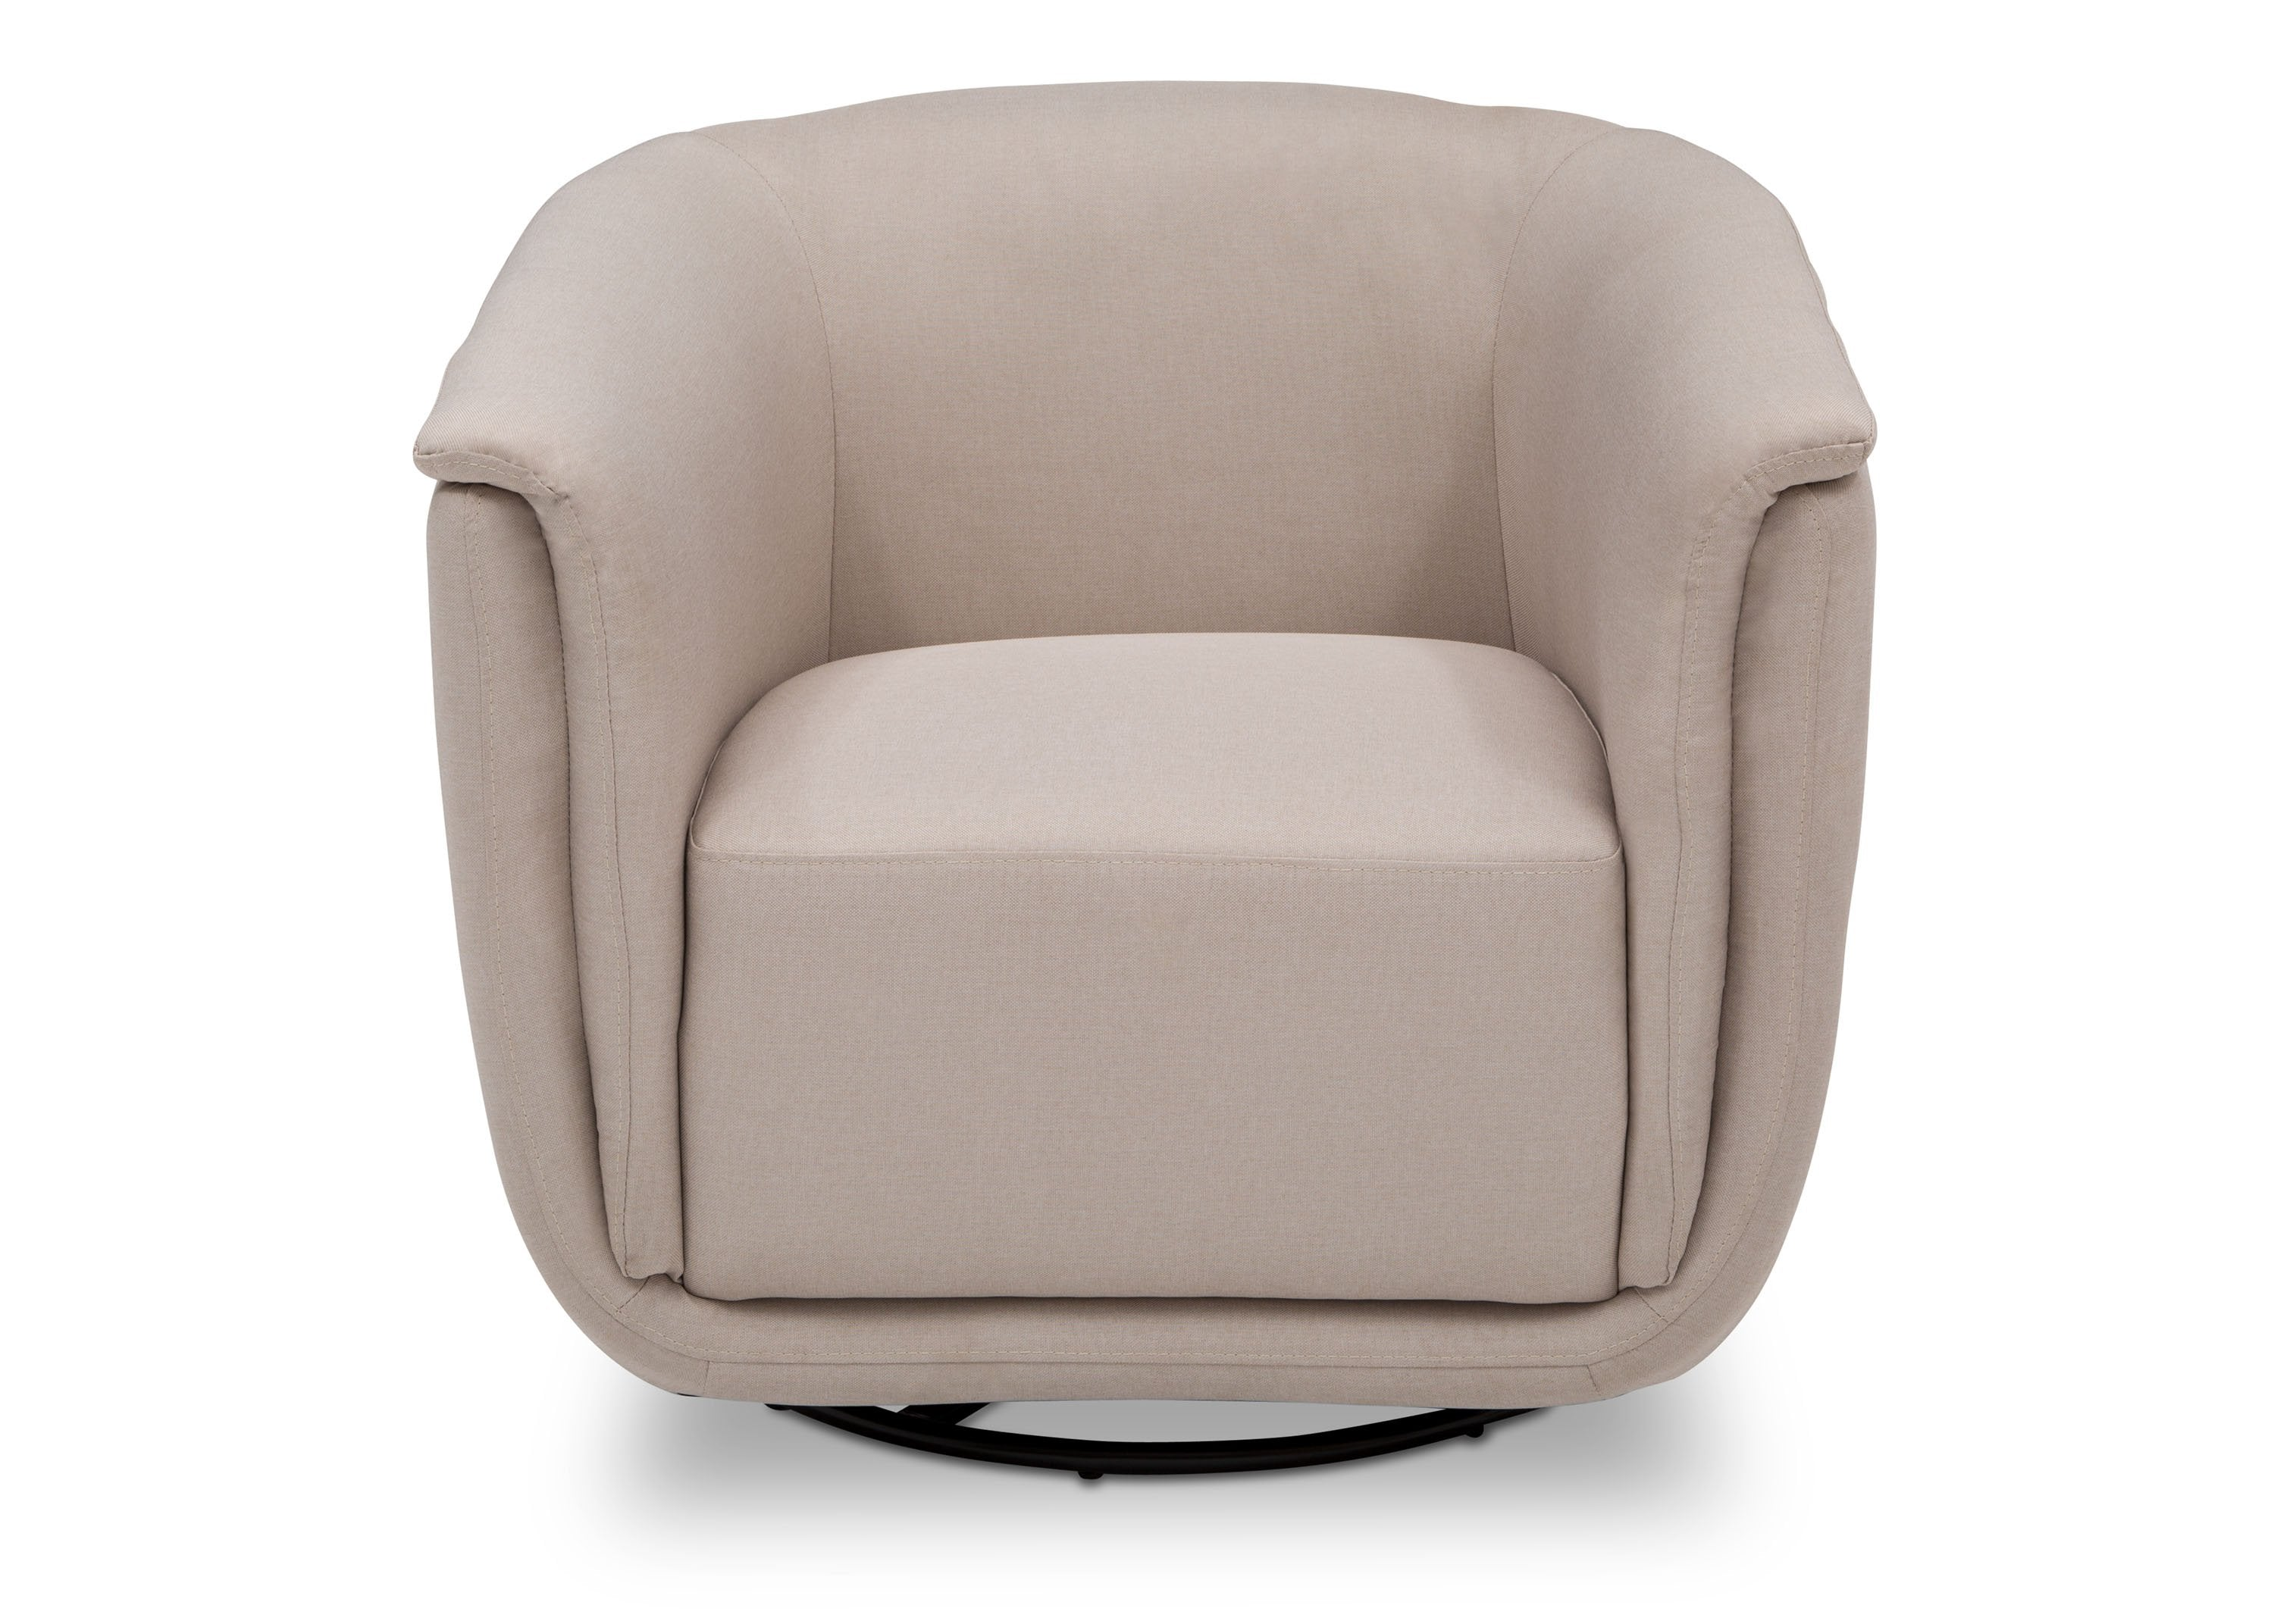 ... Delta Children Flax (710) Skylar Nursery Glider Swivel Rocker Tub Chair  (521310) ...